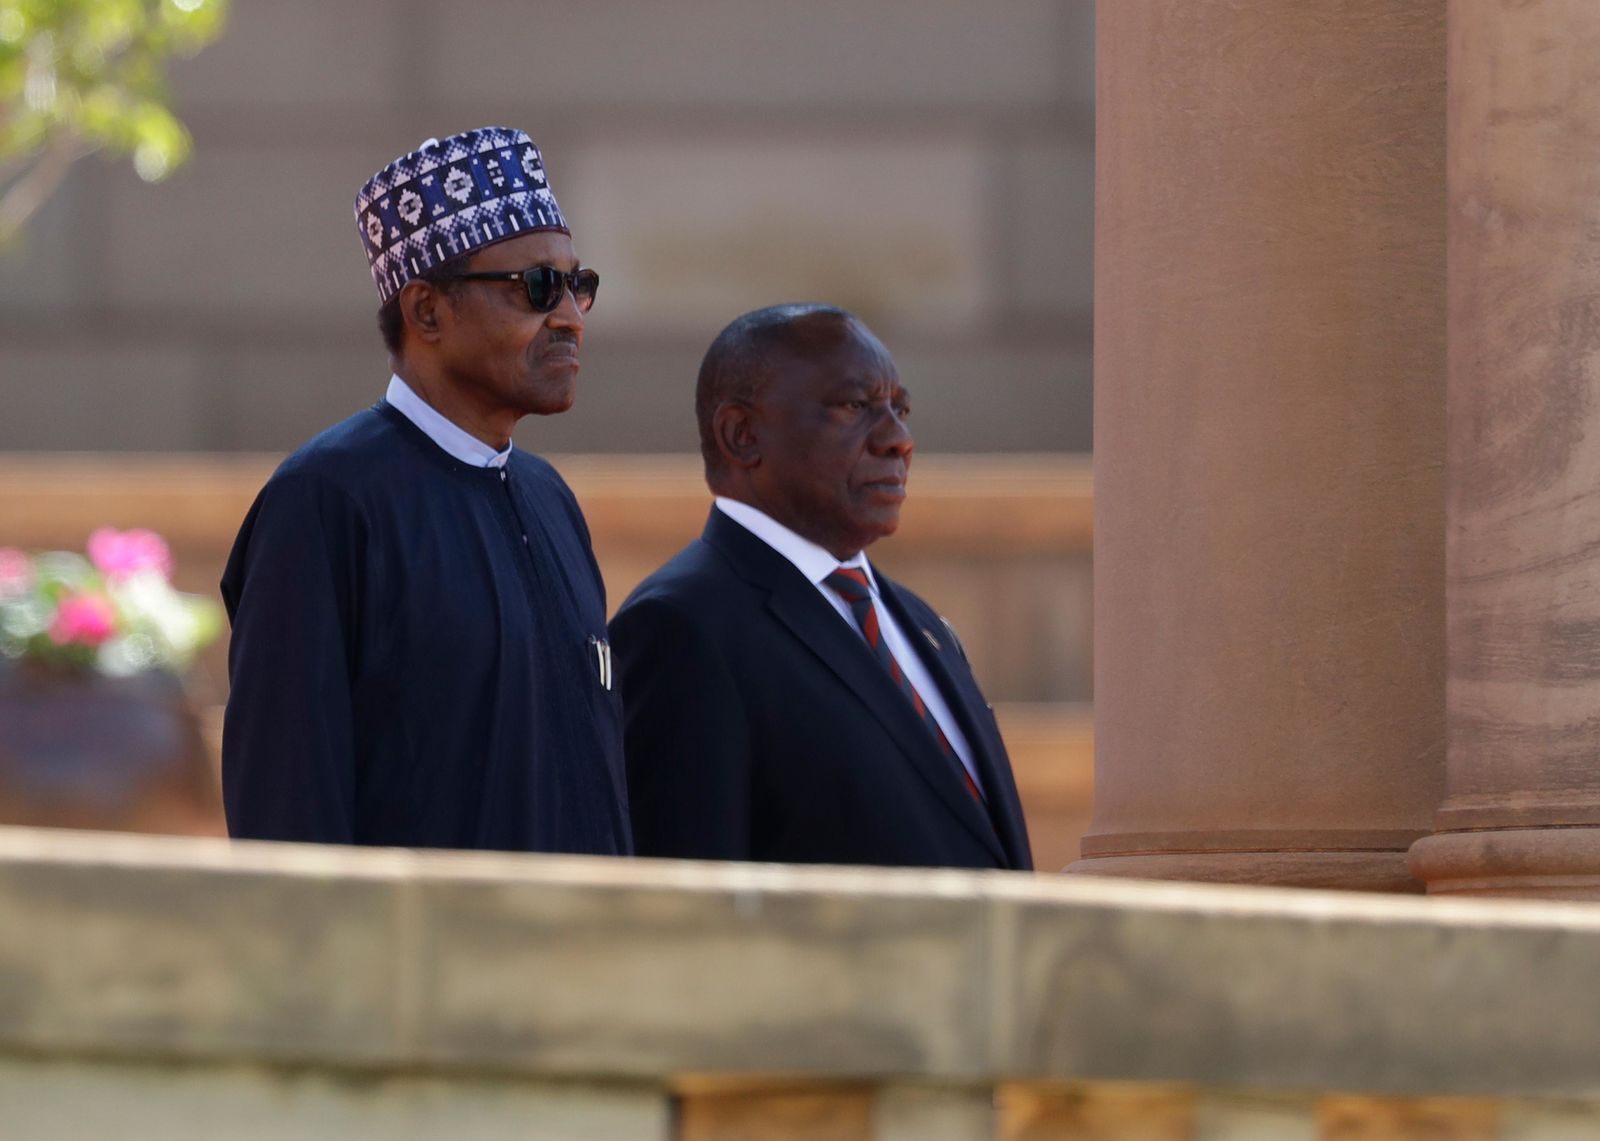 Nigerian President Muhammadu Buhari, left, stands with South Africa's leader Cyril Ramaphosa for the playing of the national anthems at a welcoming ceremony in Pretoria, South Africa Thursday, Oct. 3, 2019.{ } (AP Photo/Themba Hadebe)